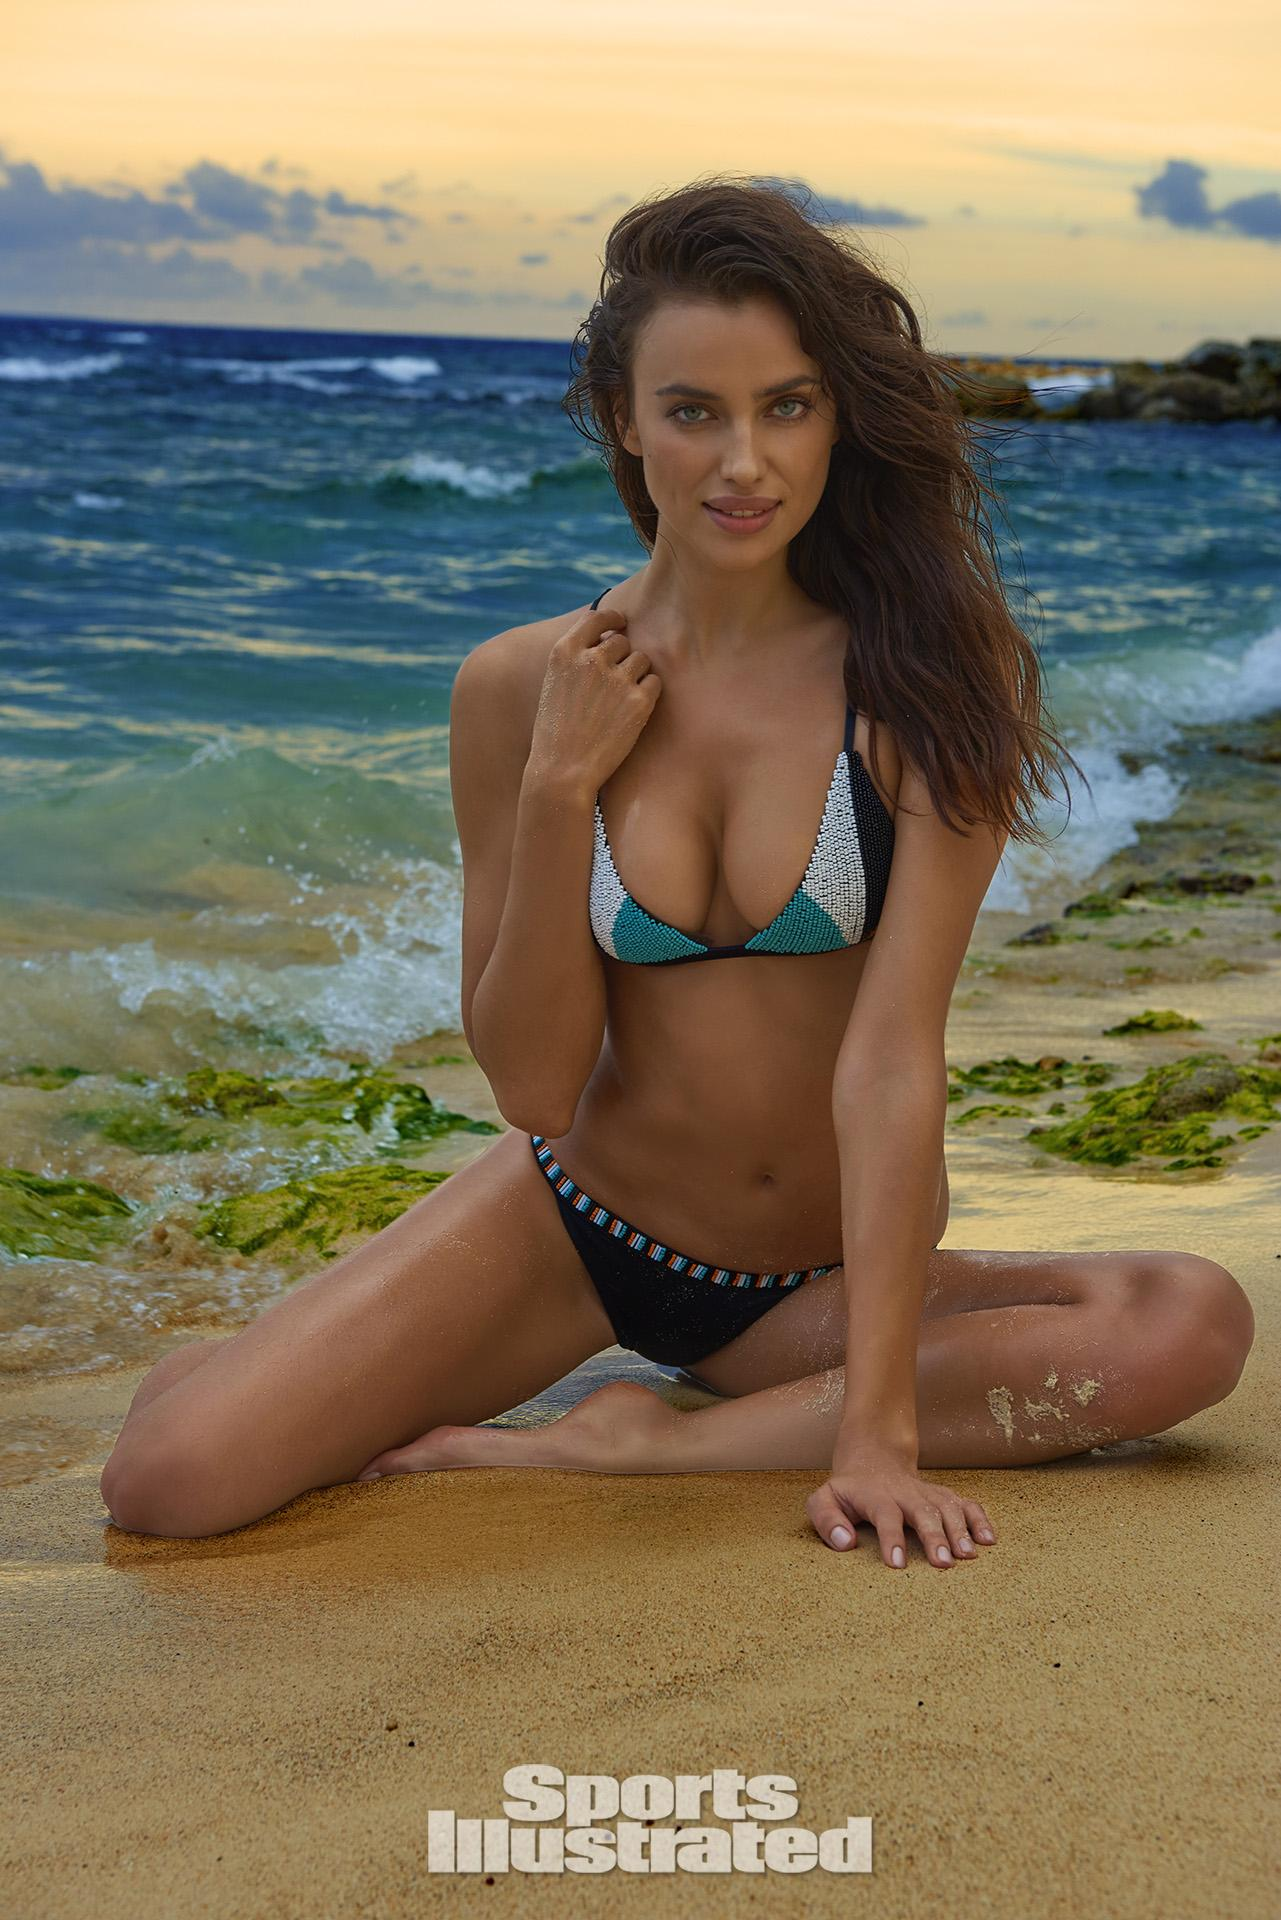 Hot Photos Of Irina Shayk